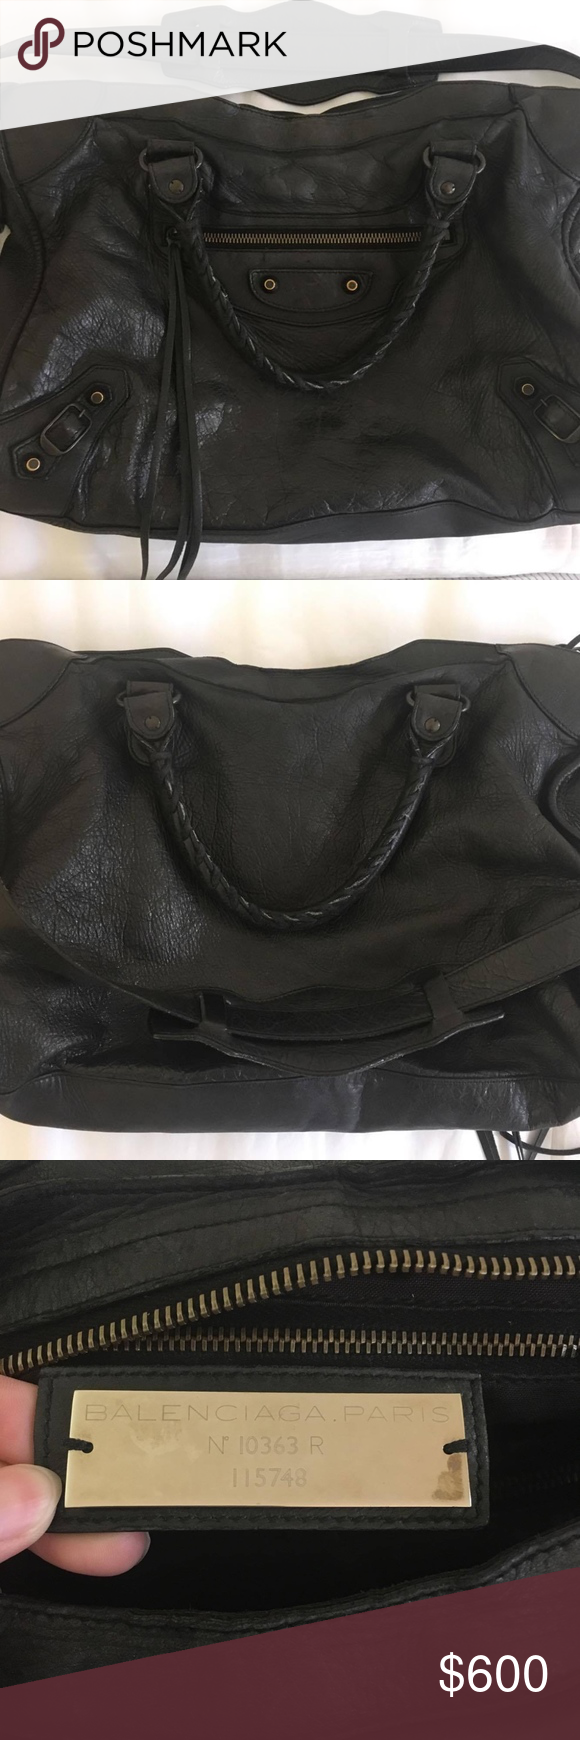 81b50a32dacb Balenciaga Classic City Black Used 100% authentic Balenciaga City bag.  Condition seen in pictures